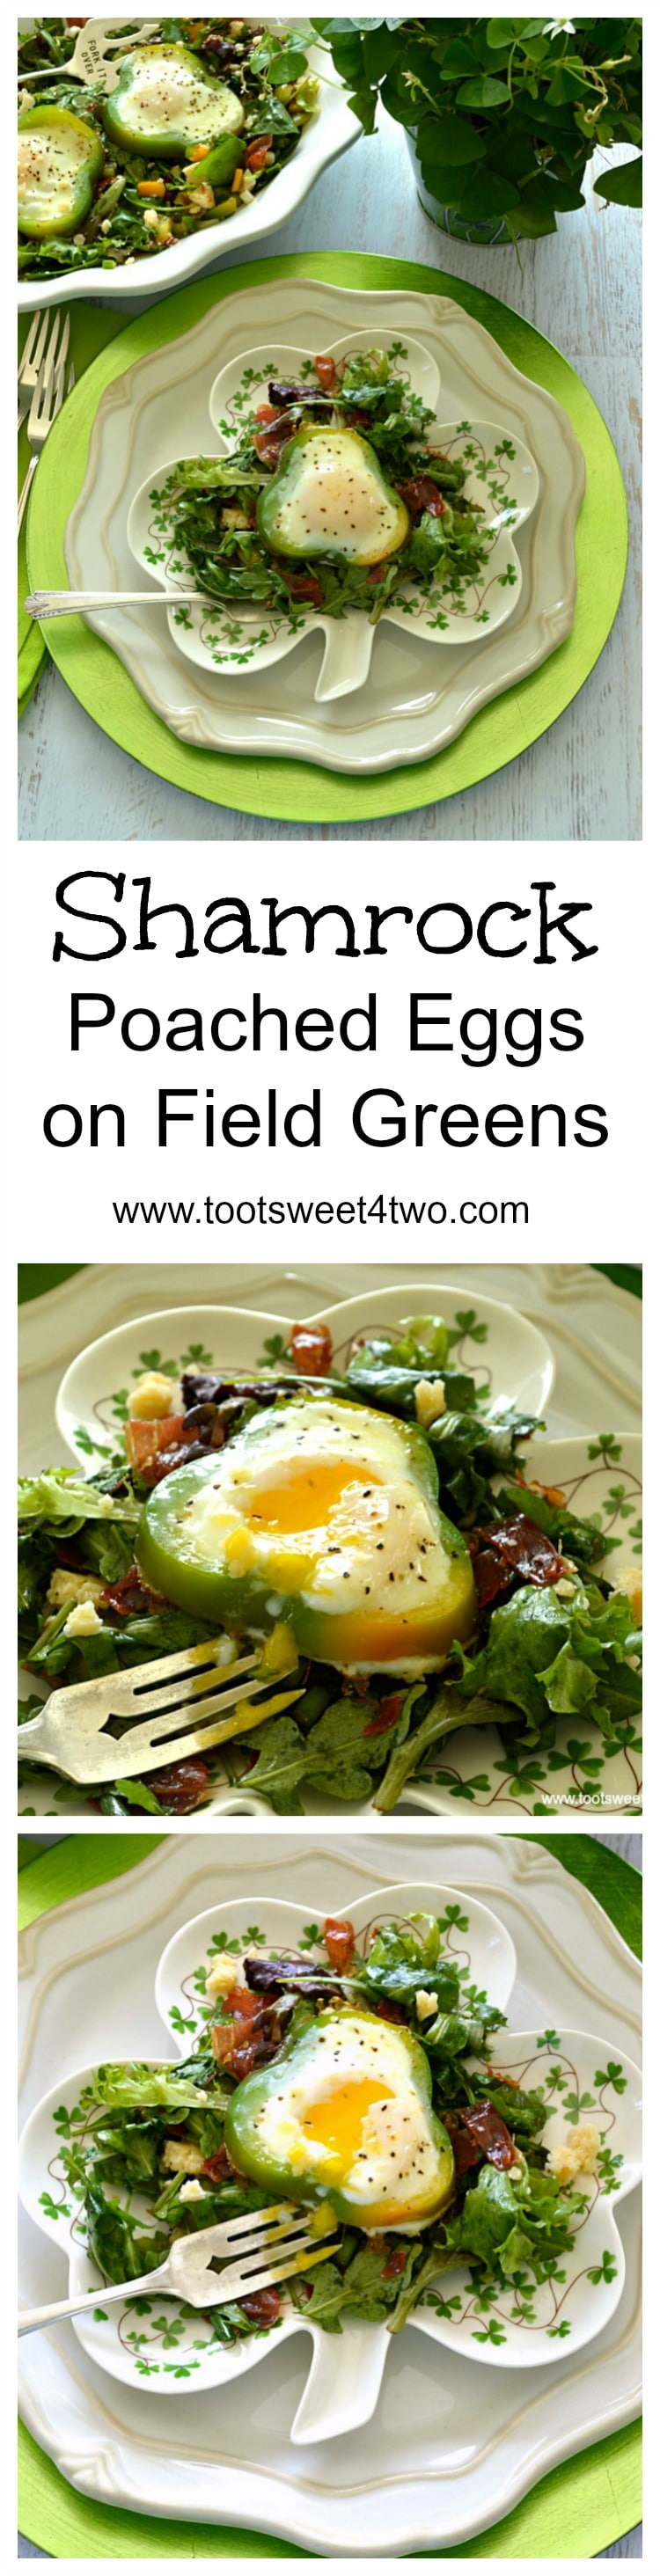 Shamrock Poached Eggs on Field Greens collage